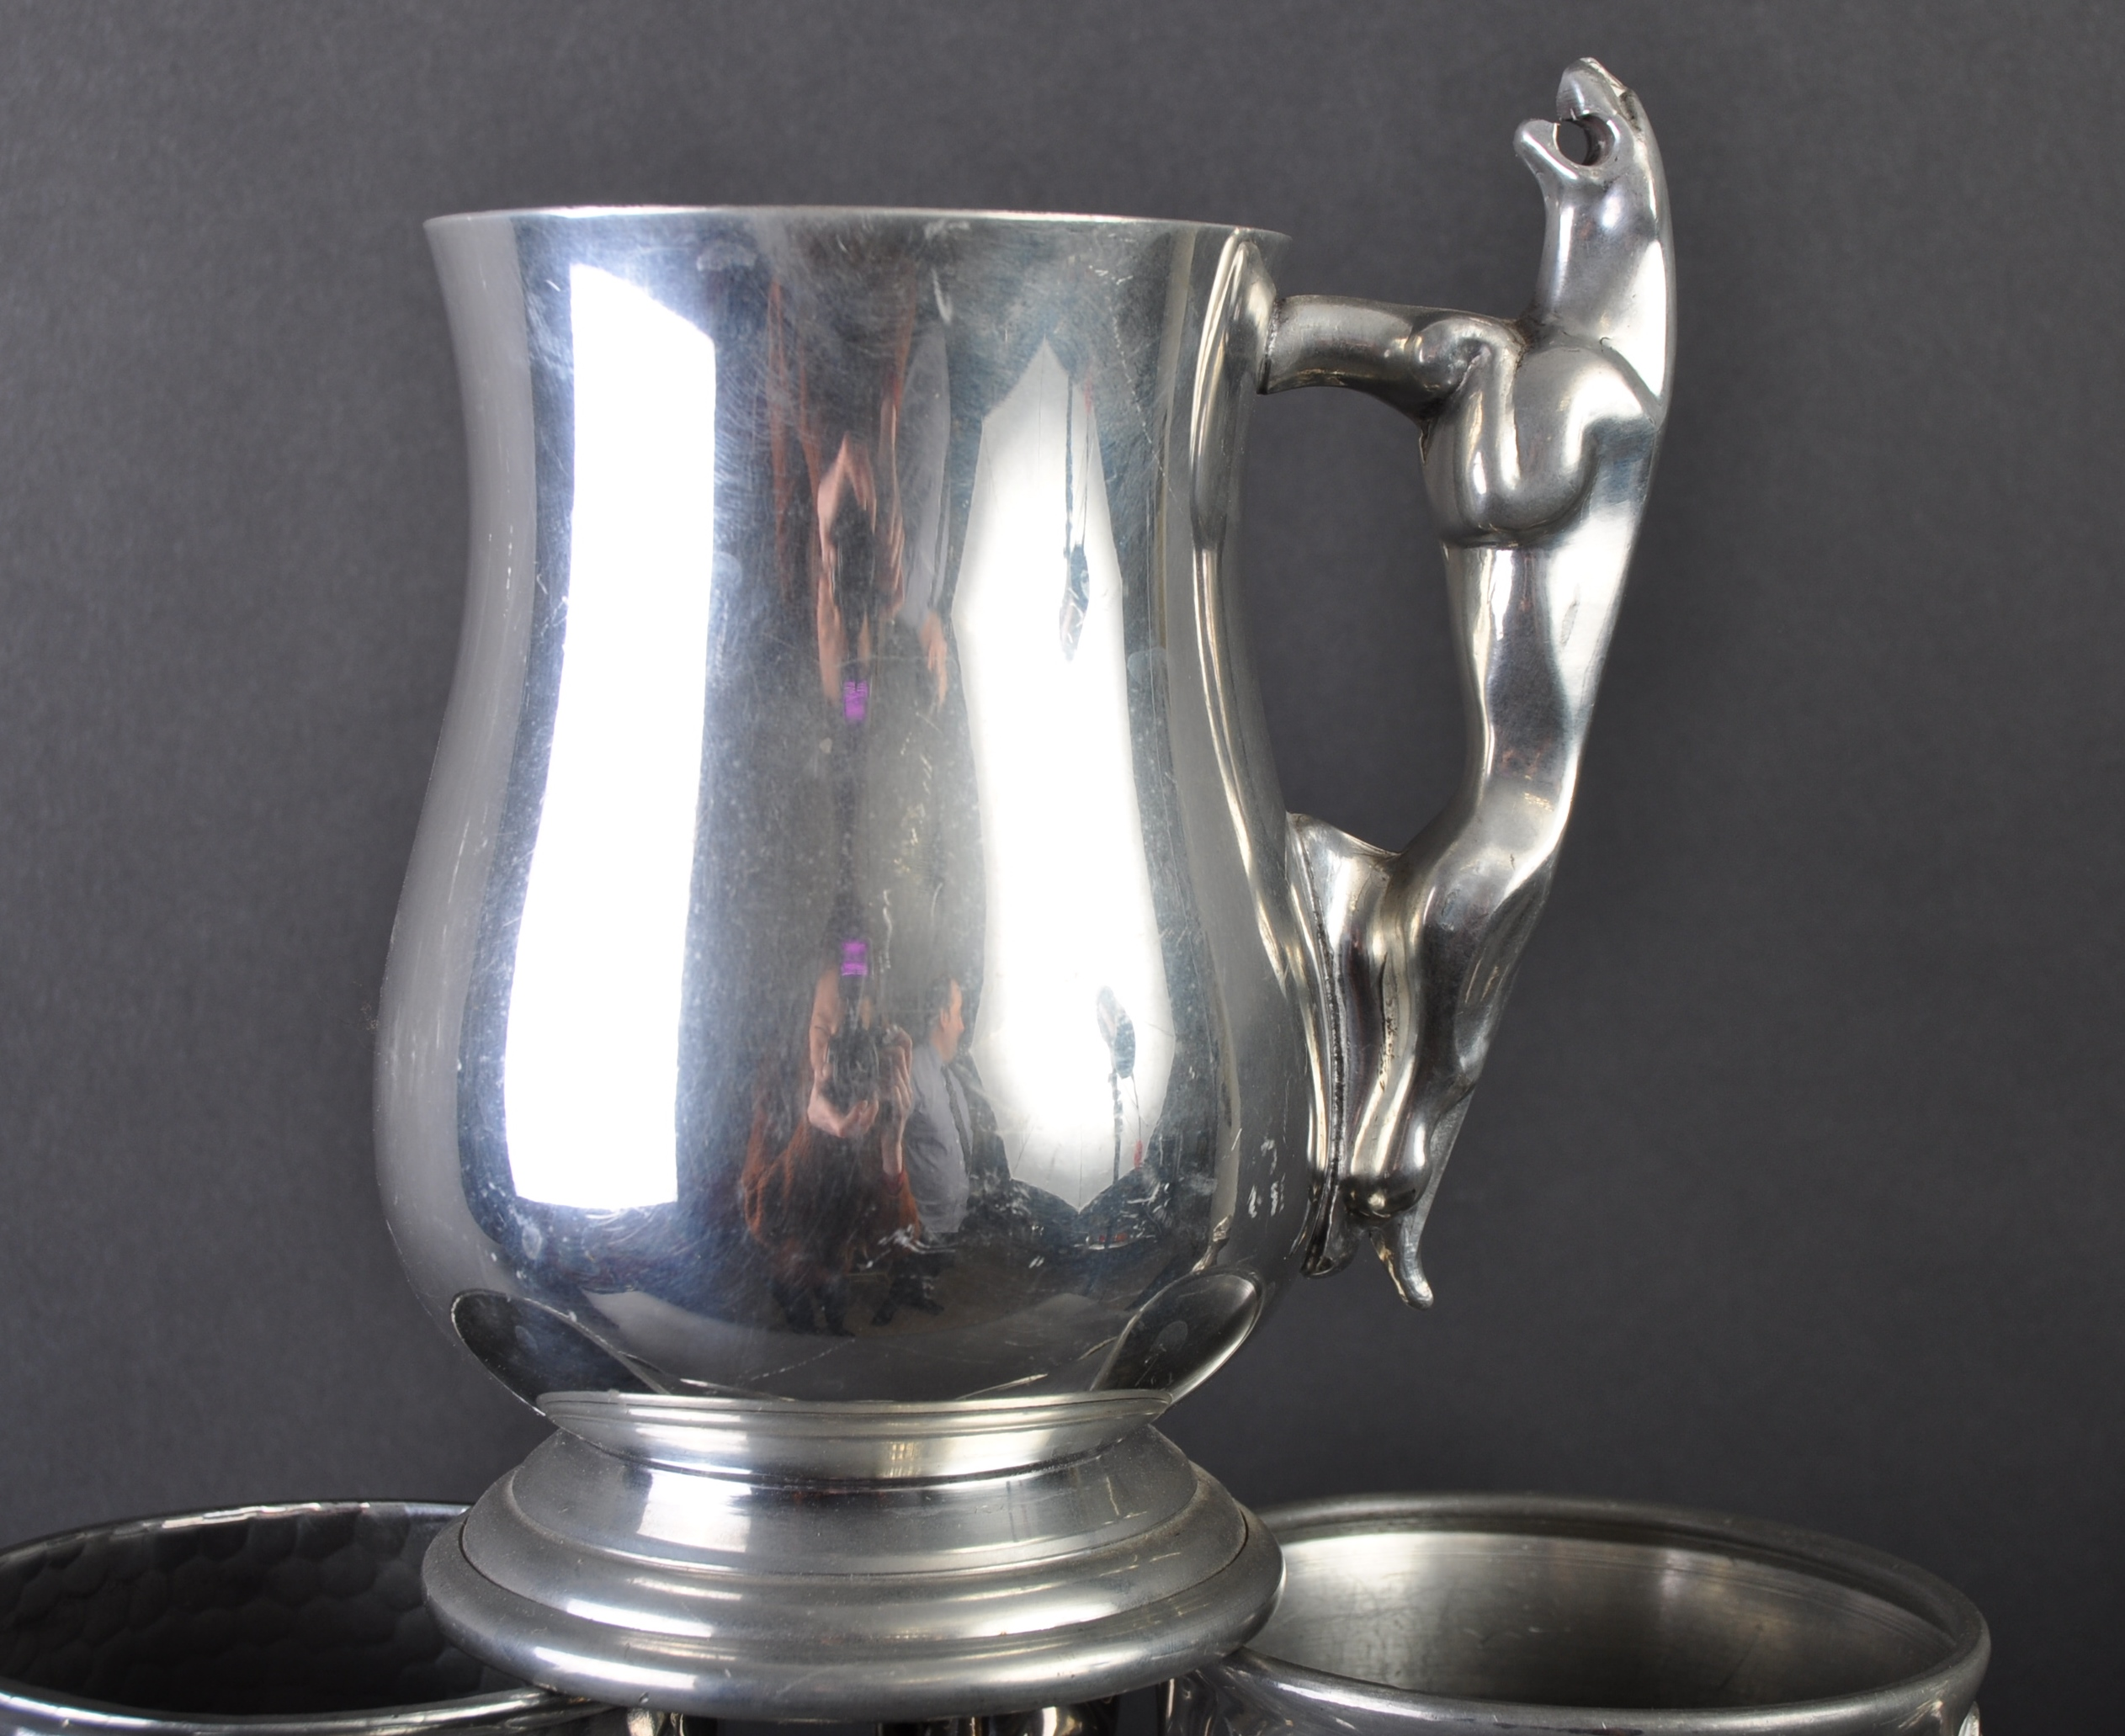 JAGUAR - COLLECTION OF SIX ORIGINAL MASCOT HANDLED PEWTER TANKARDS - Image 2 of 7